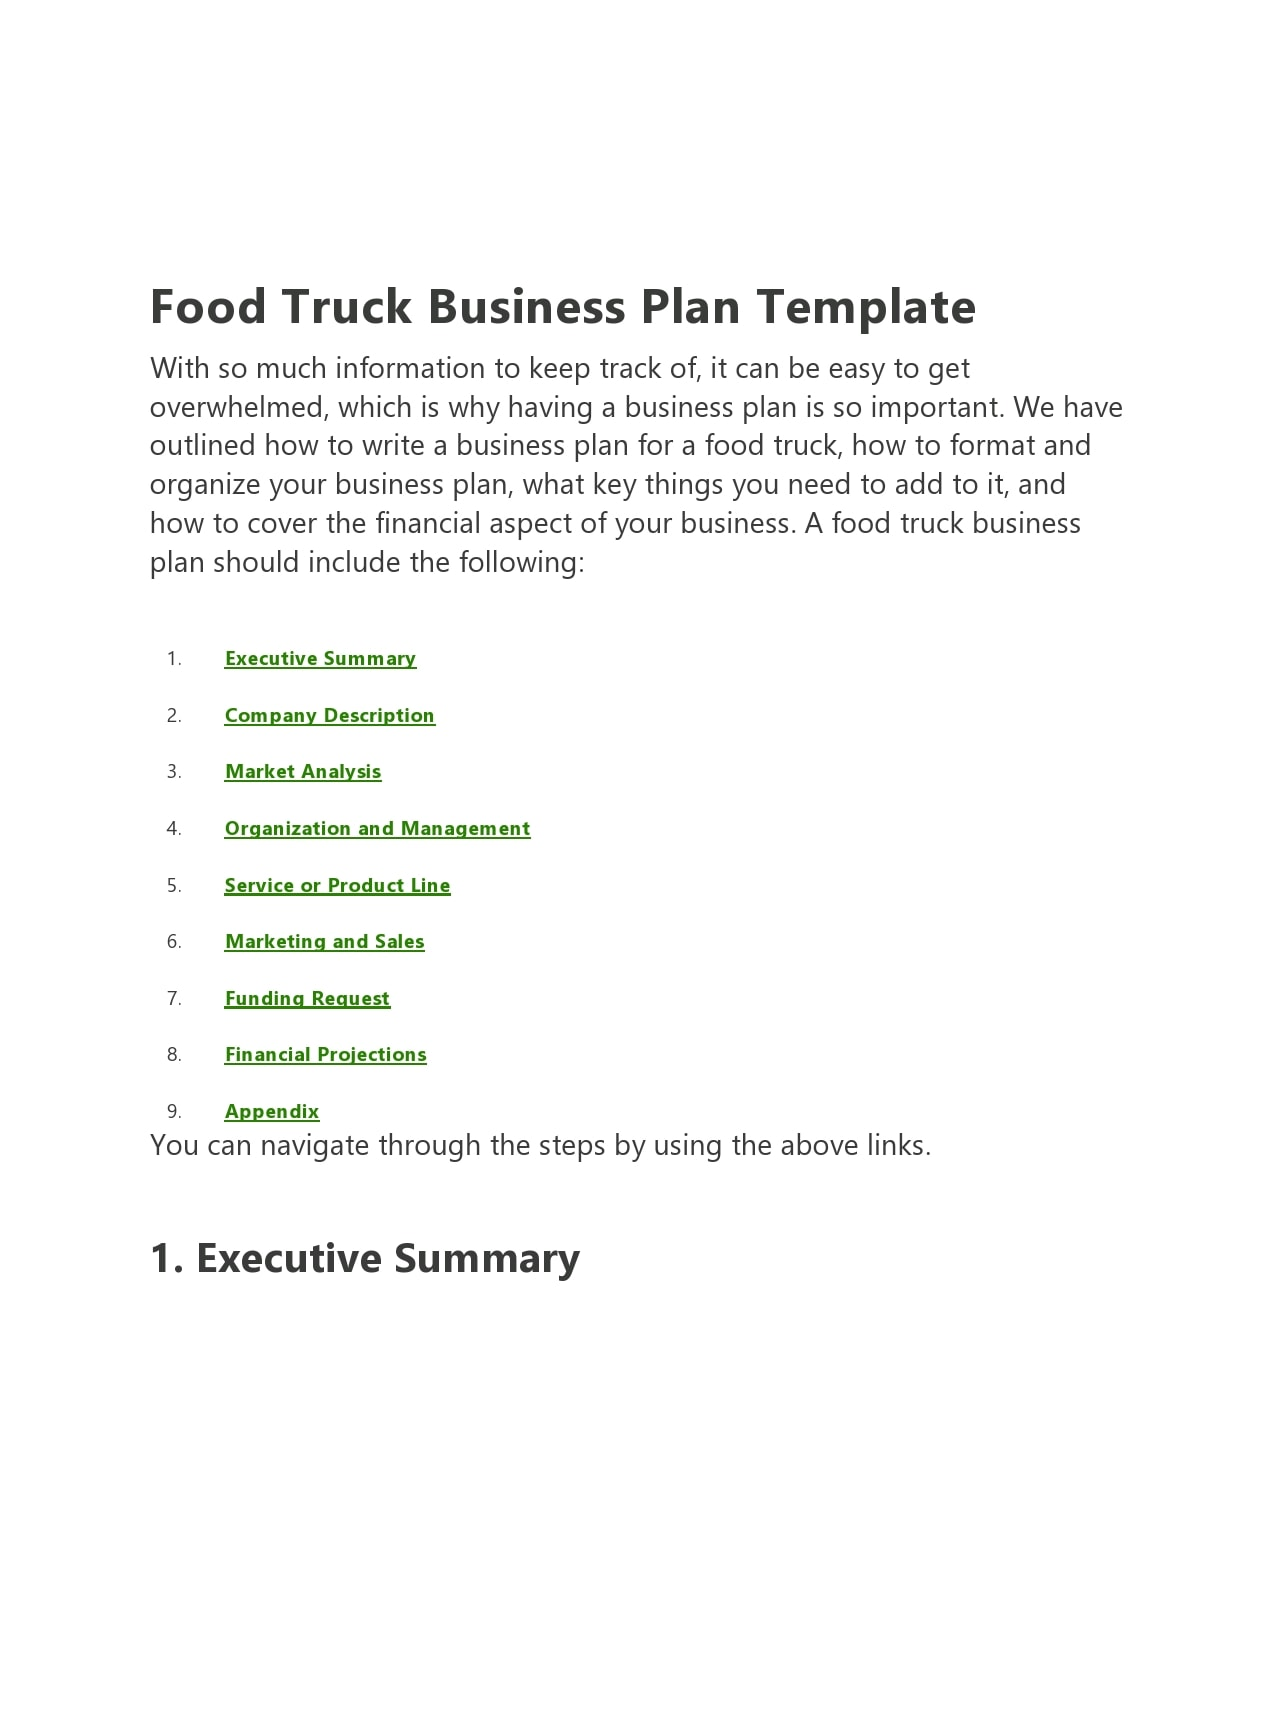 food truck business plan 02